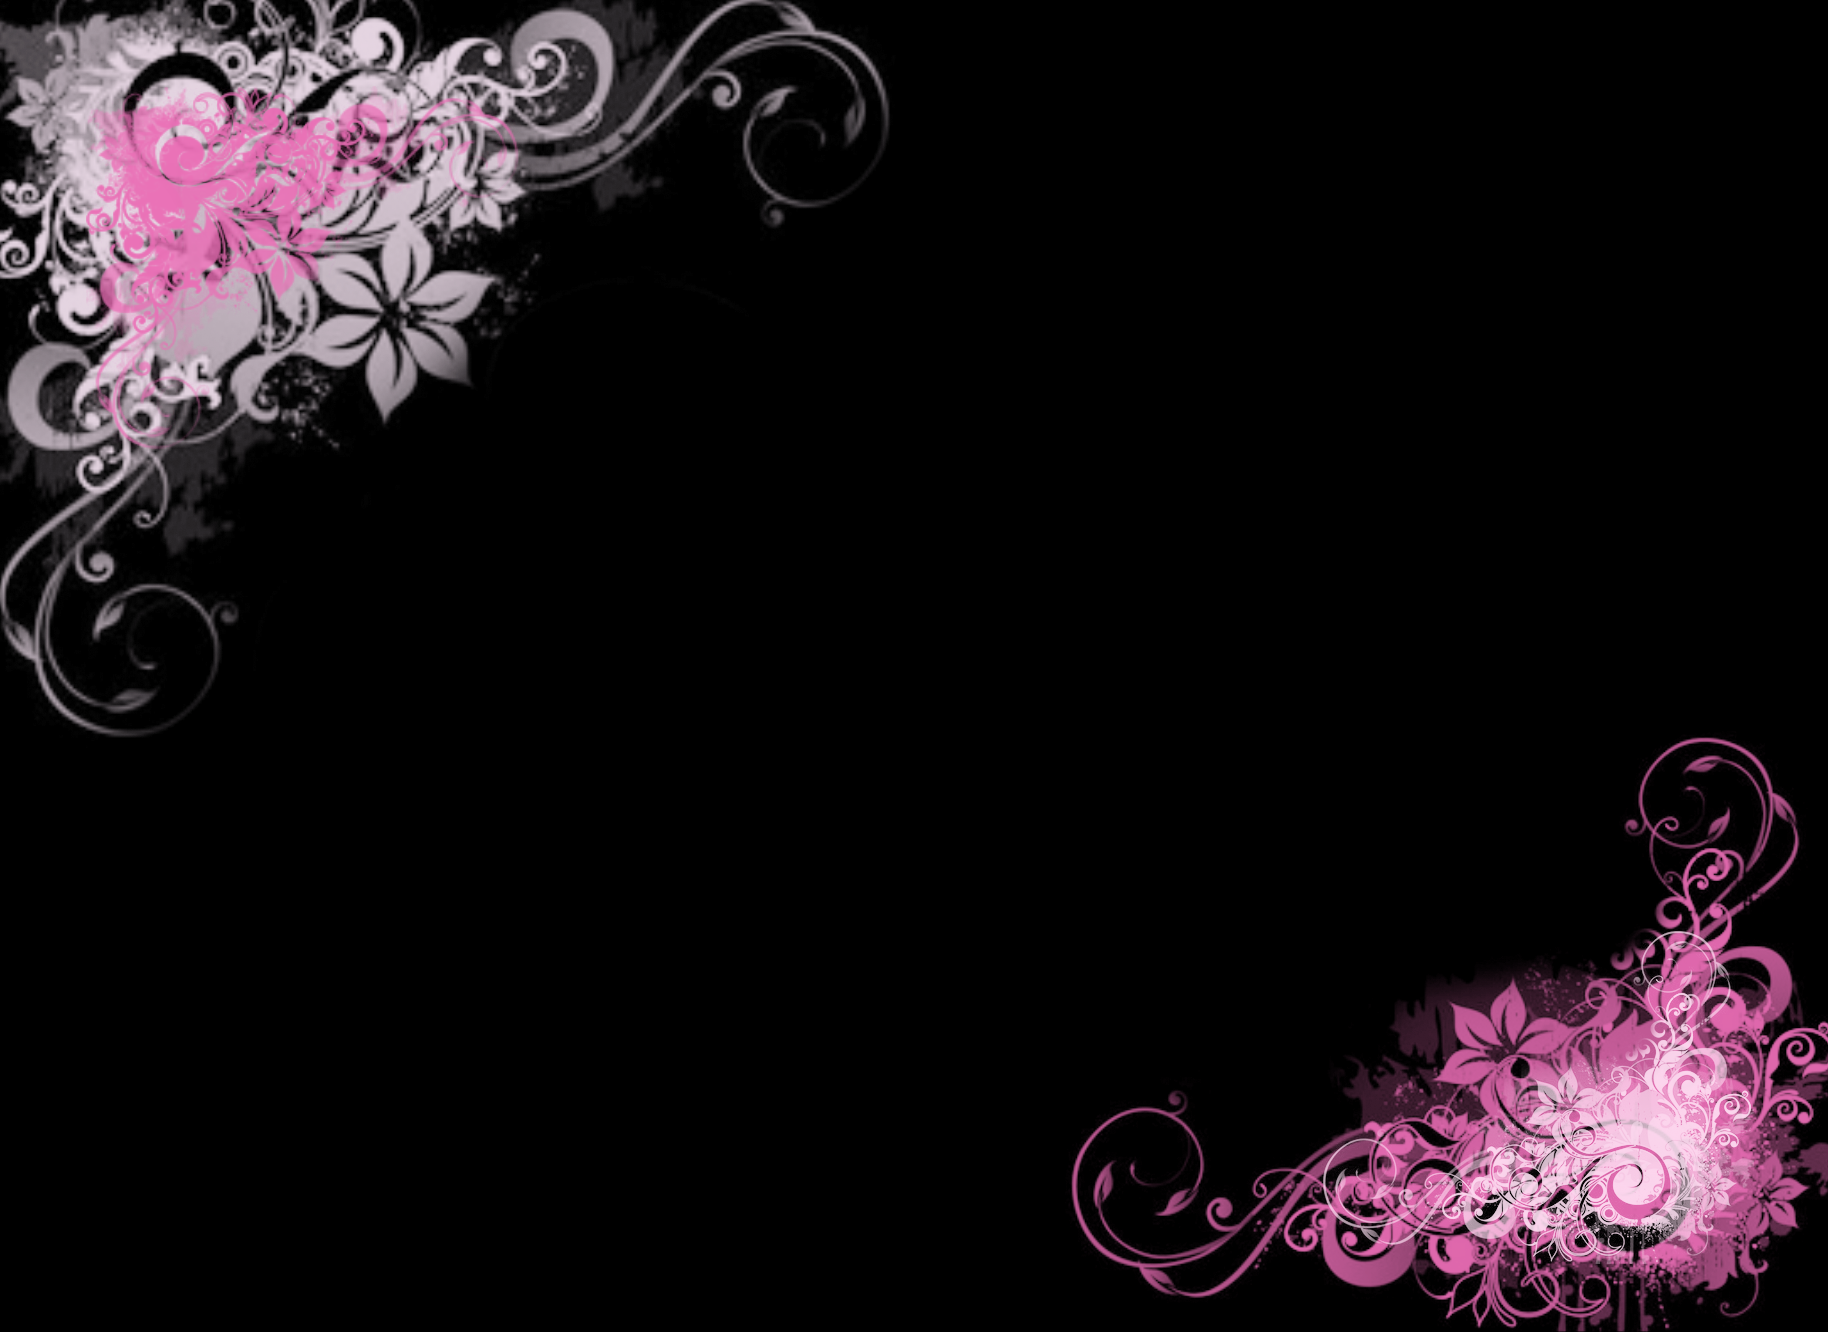 Pink Borders By Sexc Angel On Deviantart